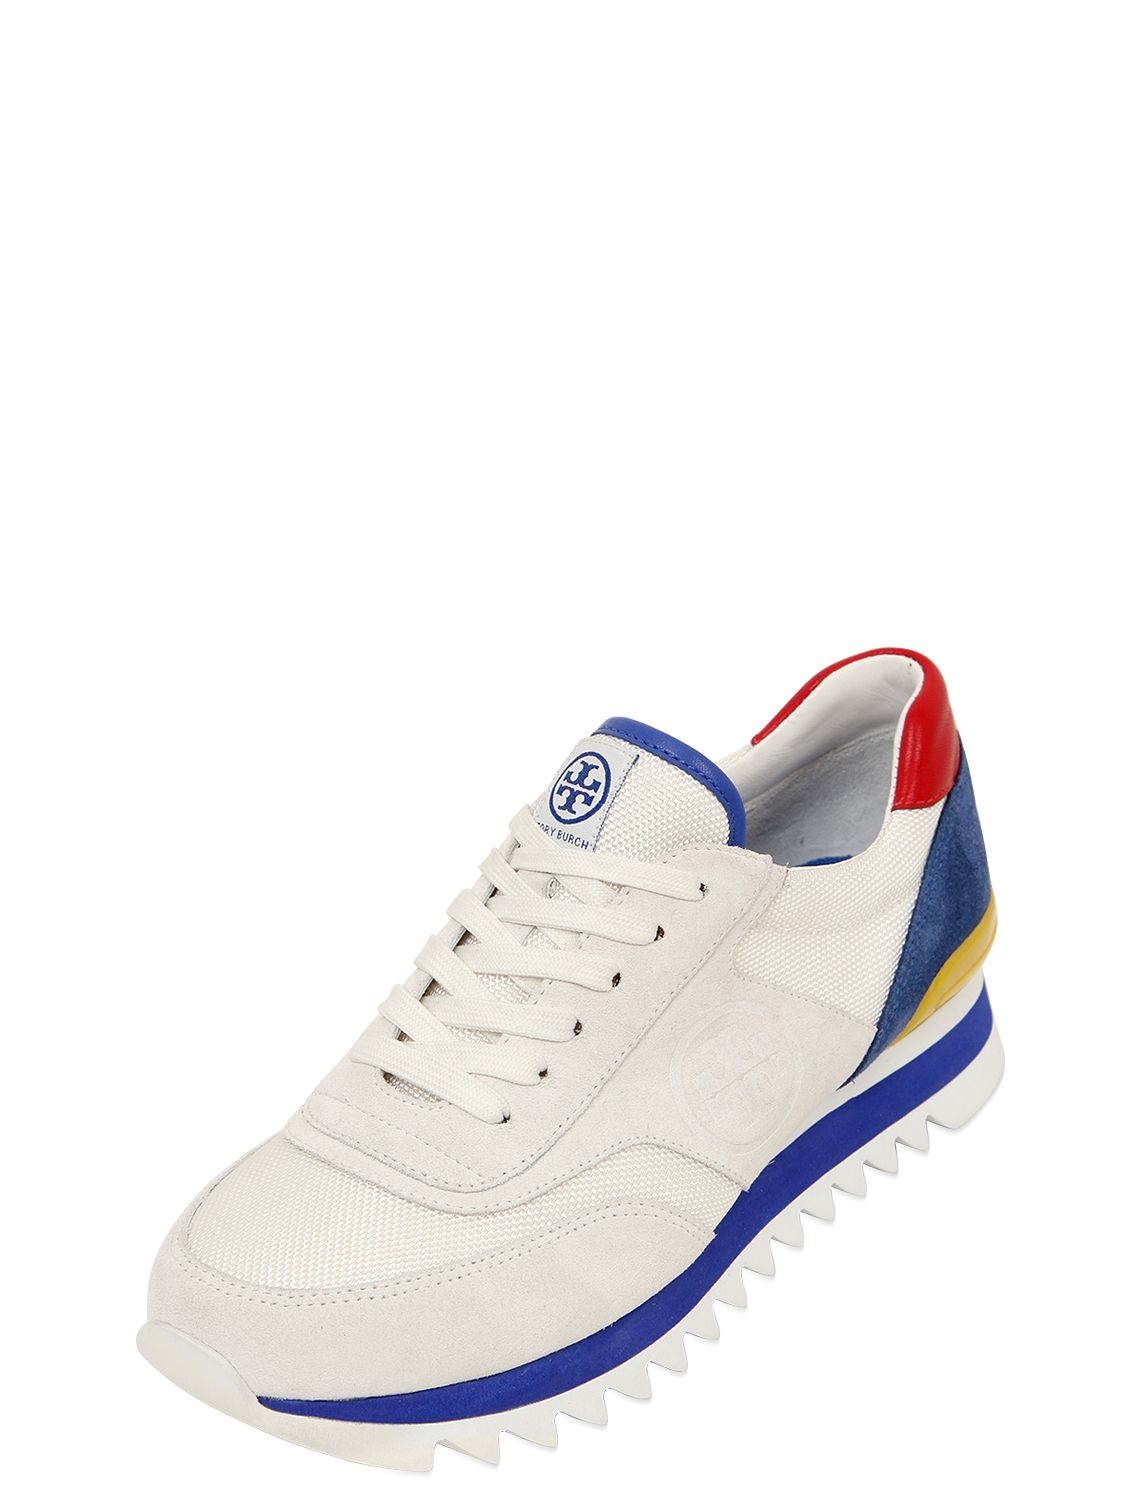 83ad79a3af3 Tory Burch 20mm Sawtooth Suede   Mesh Sneakers in White - Lyst